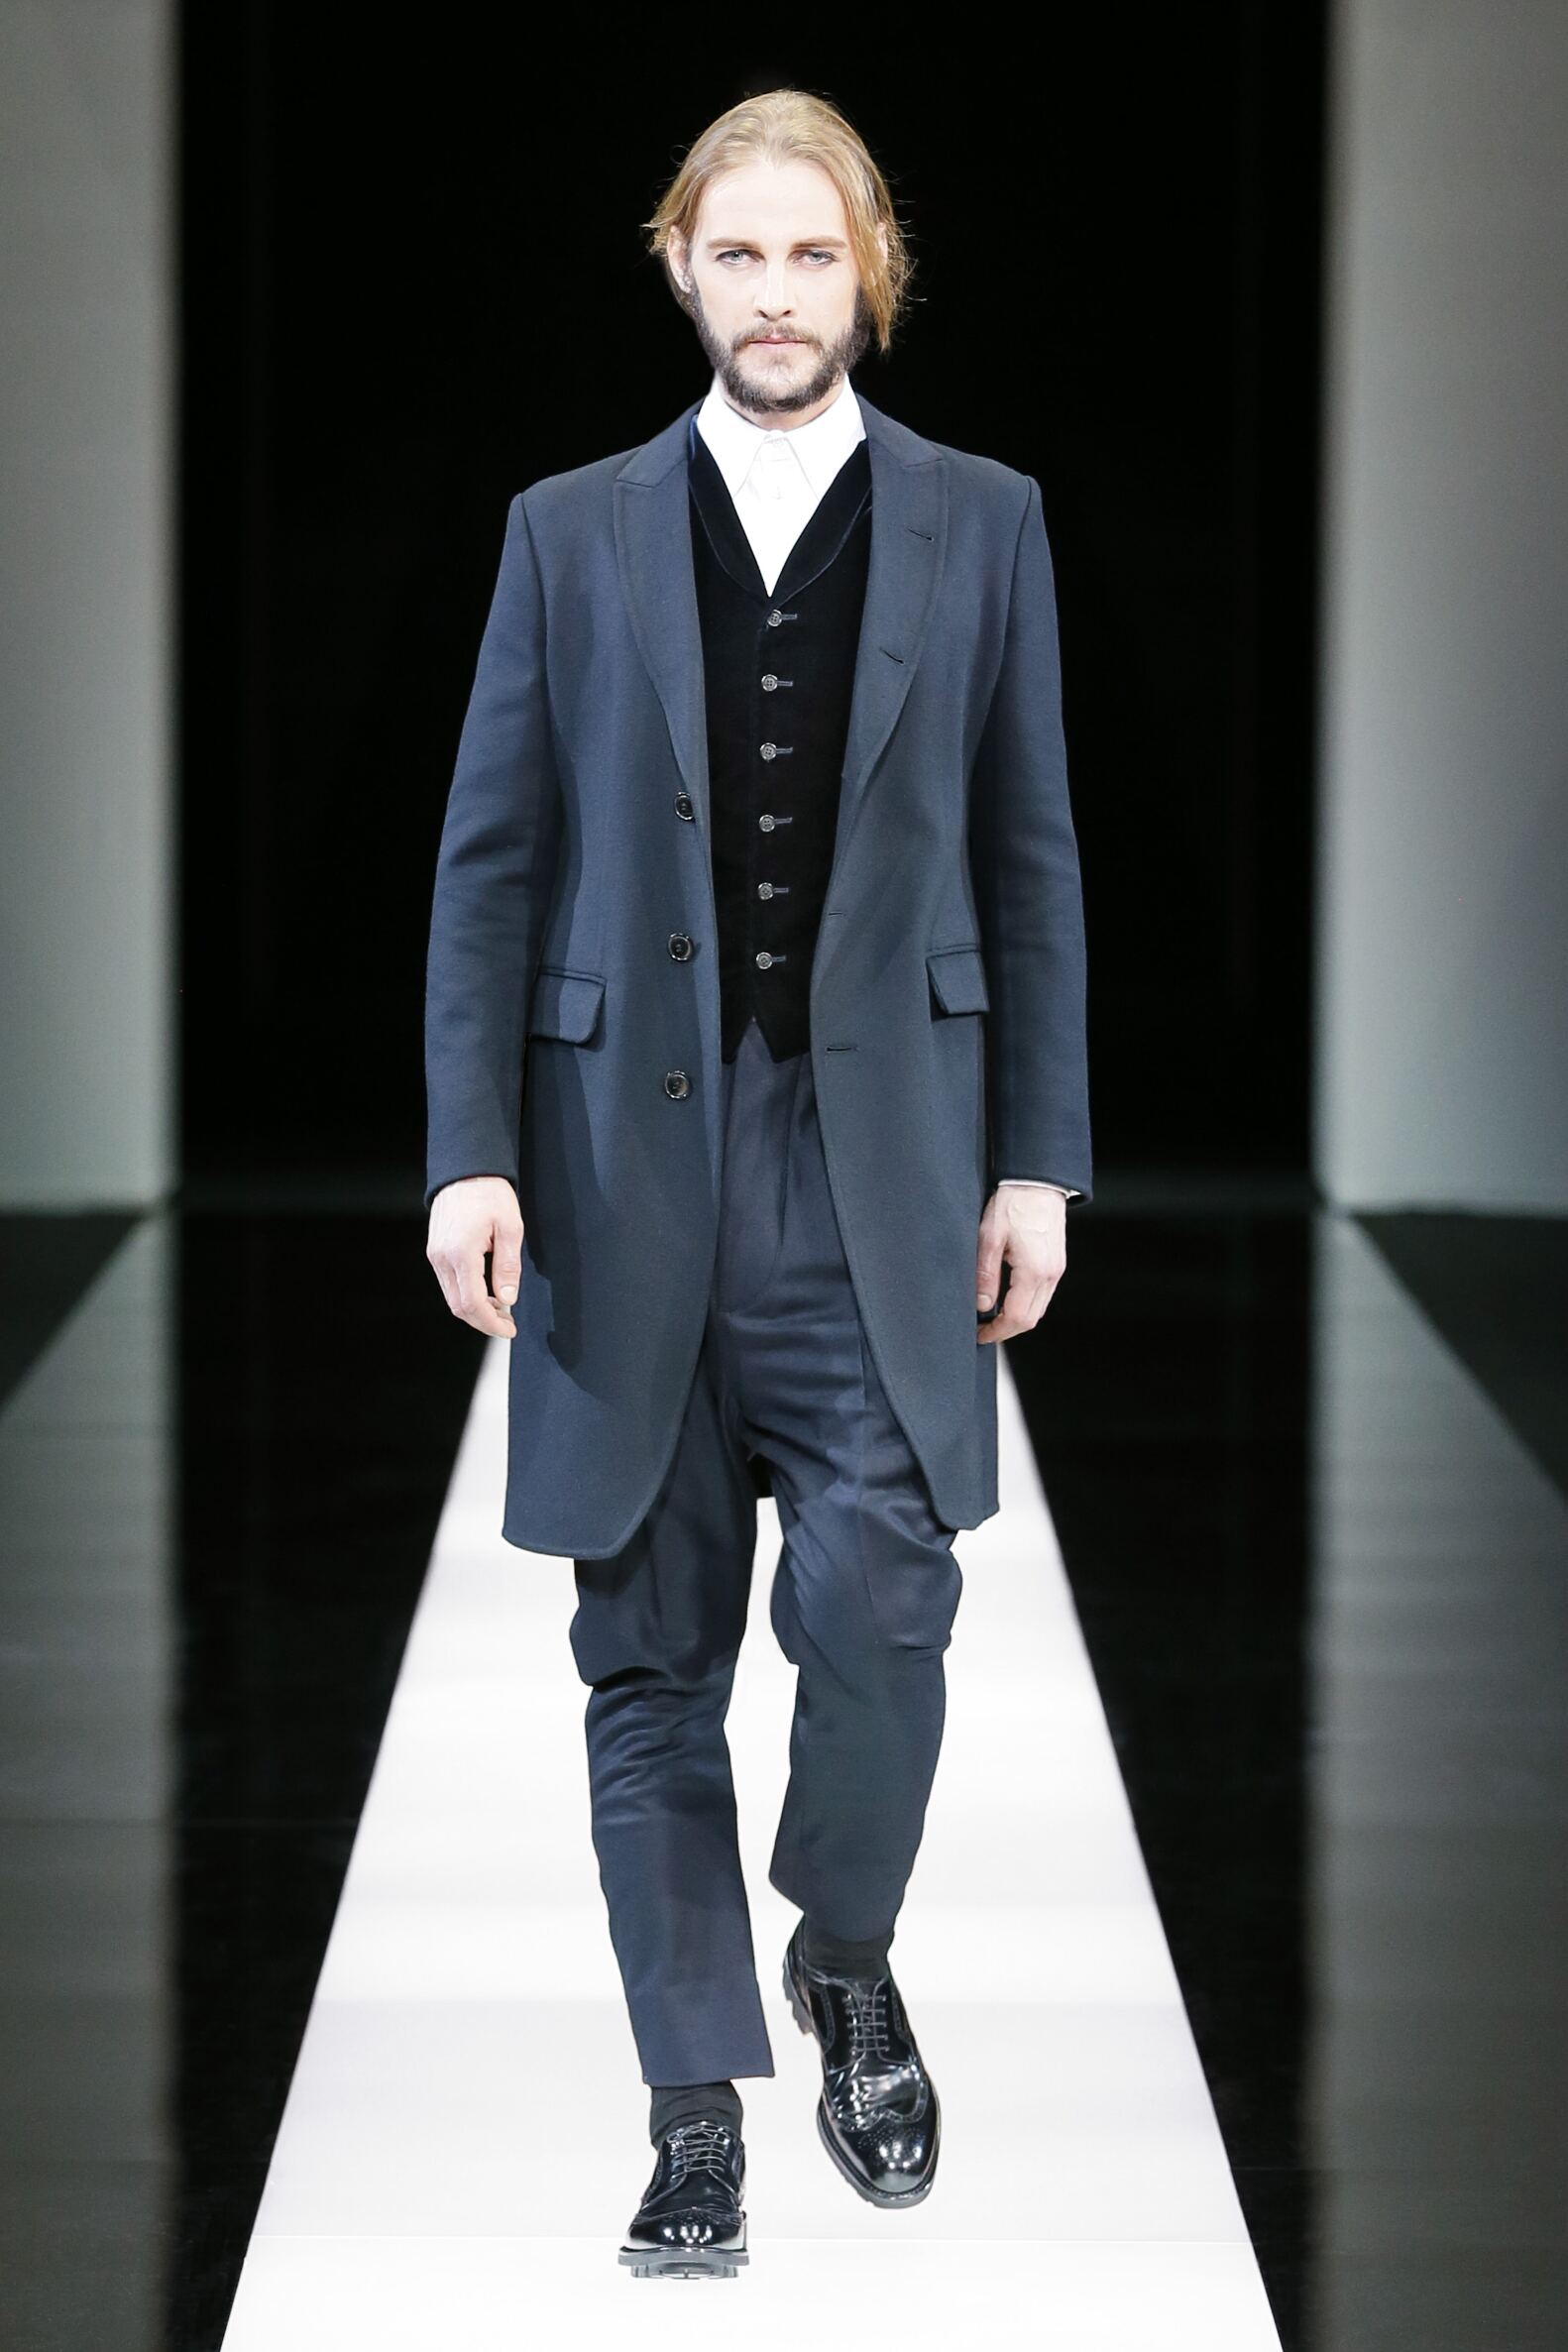 2015 Catwalk Giorgio Armani Collection Fashion Show Winter